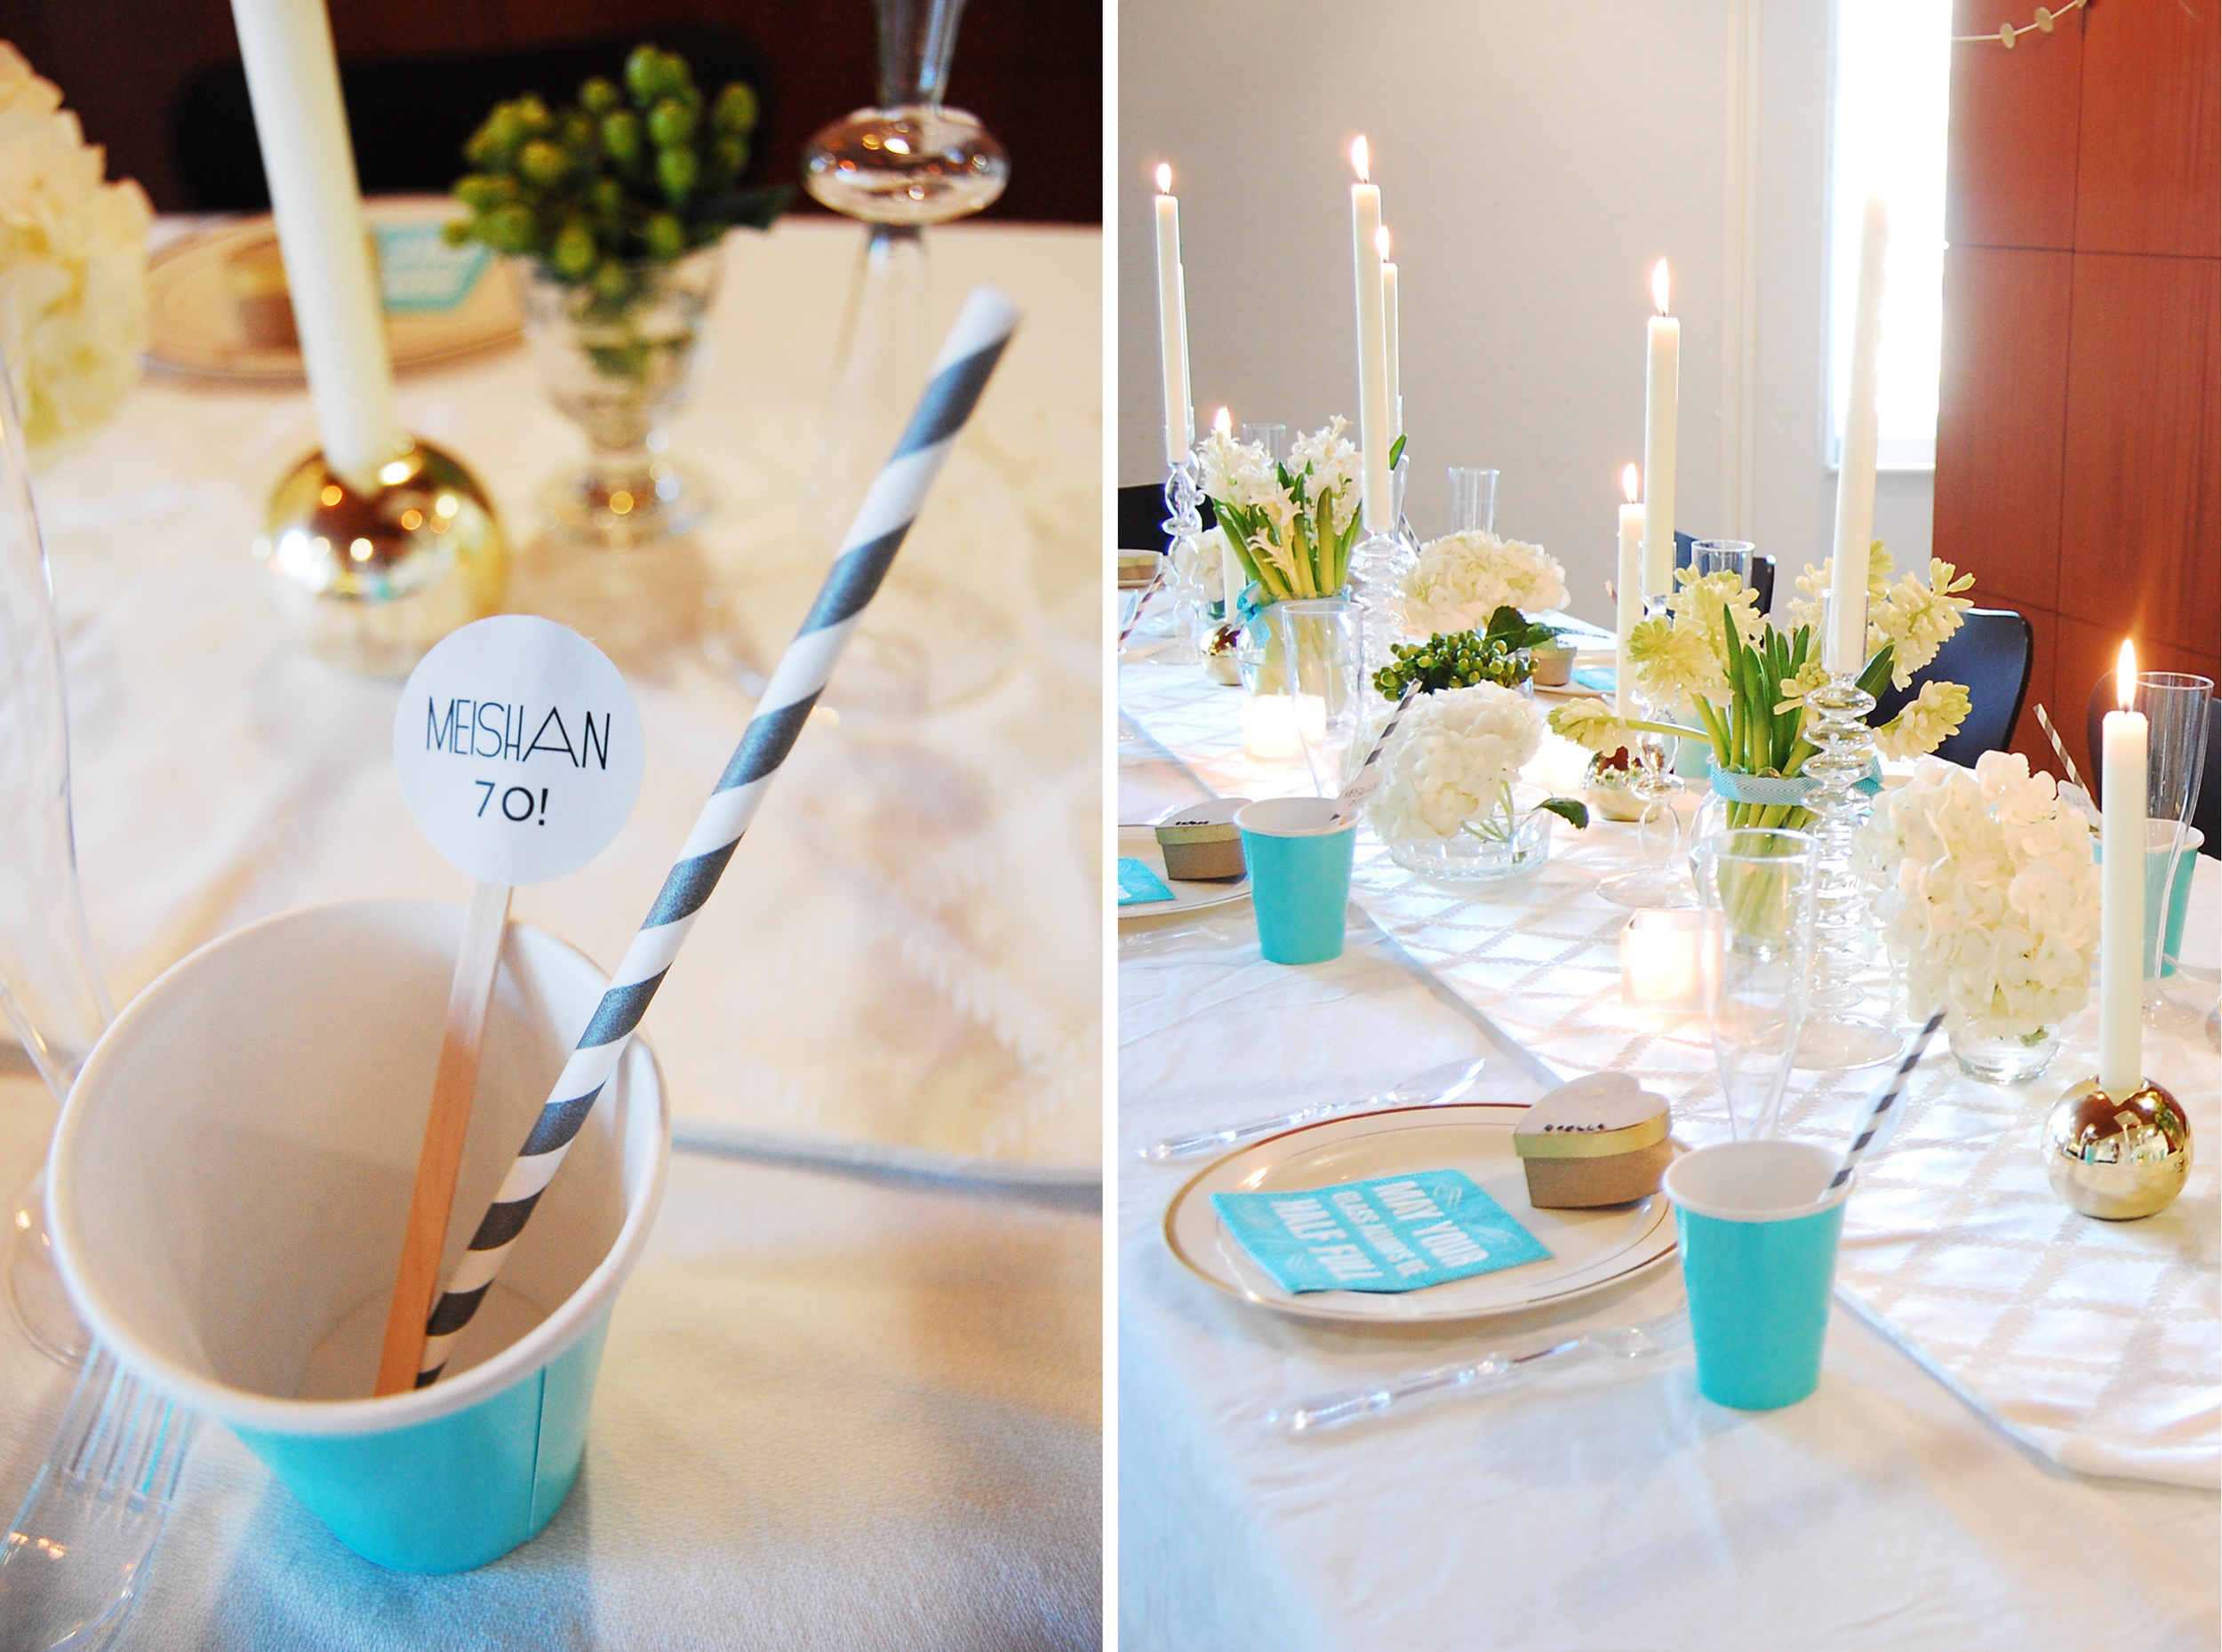 birthday_brunch_turqoise_gold_tablescape_colorful_whimsical_bold_hanaluluco_2.jpg